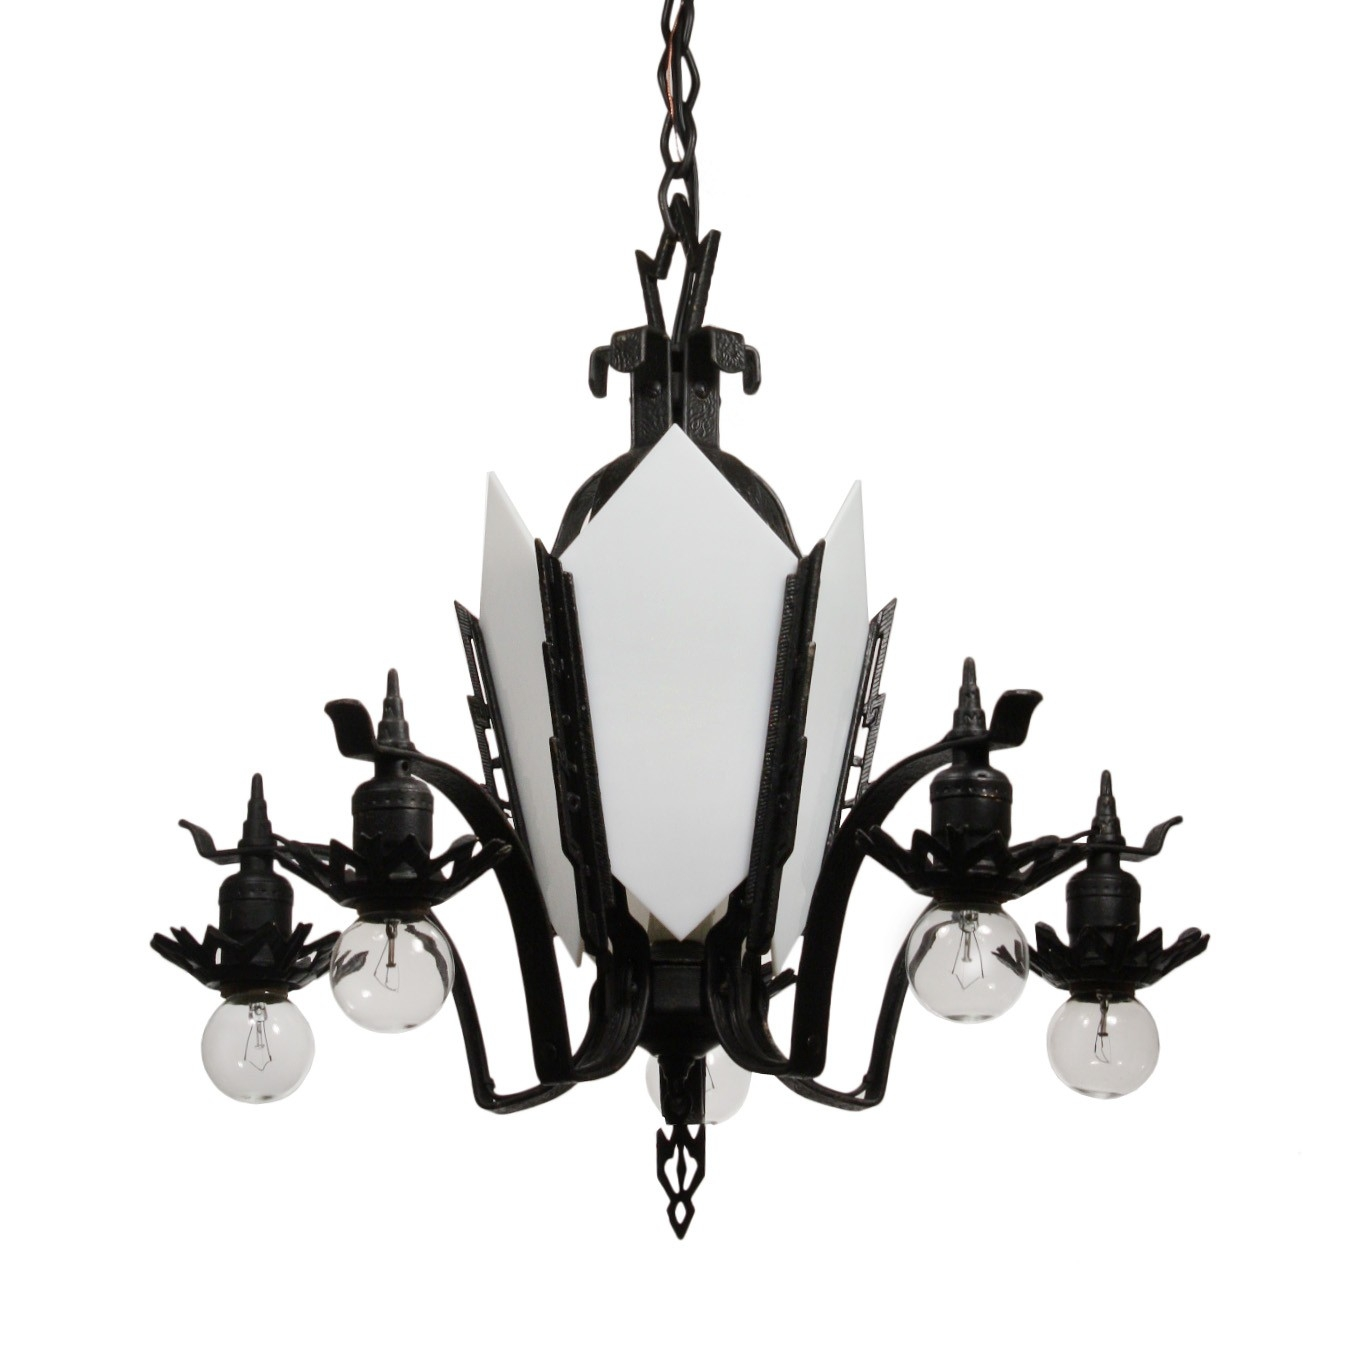 Antique Art Deco Cast Iron Chandelier C 1930s Preservation Inside Cast Iron Antique Chandelier (Image 3 of 15)